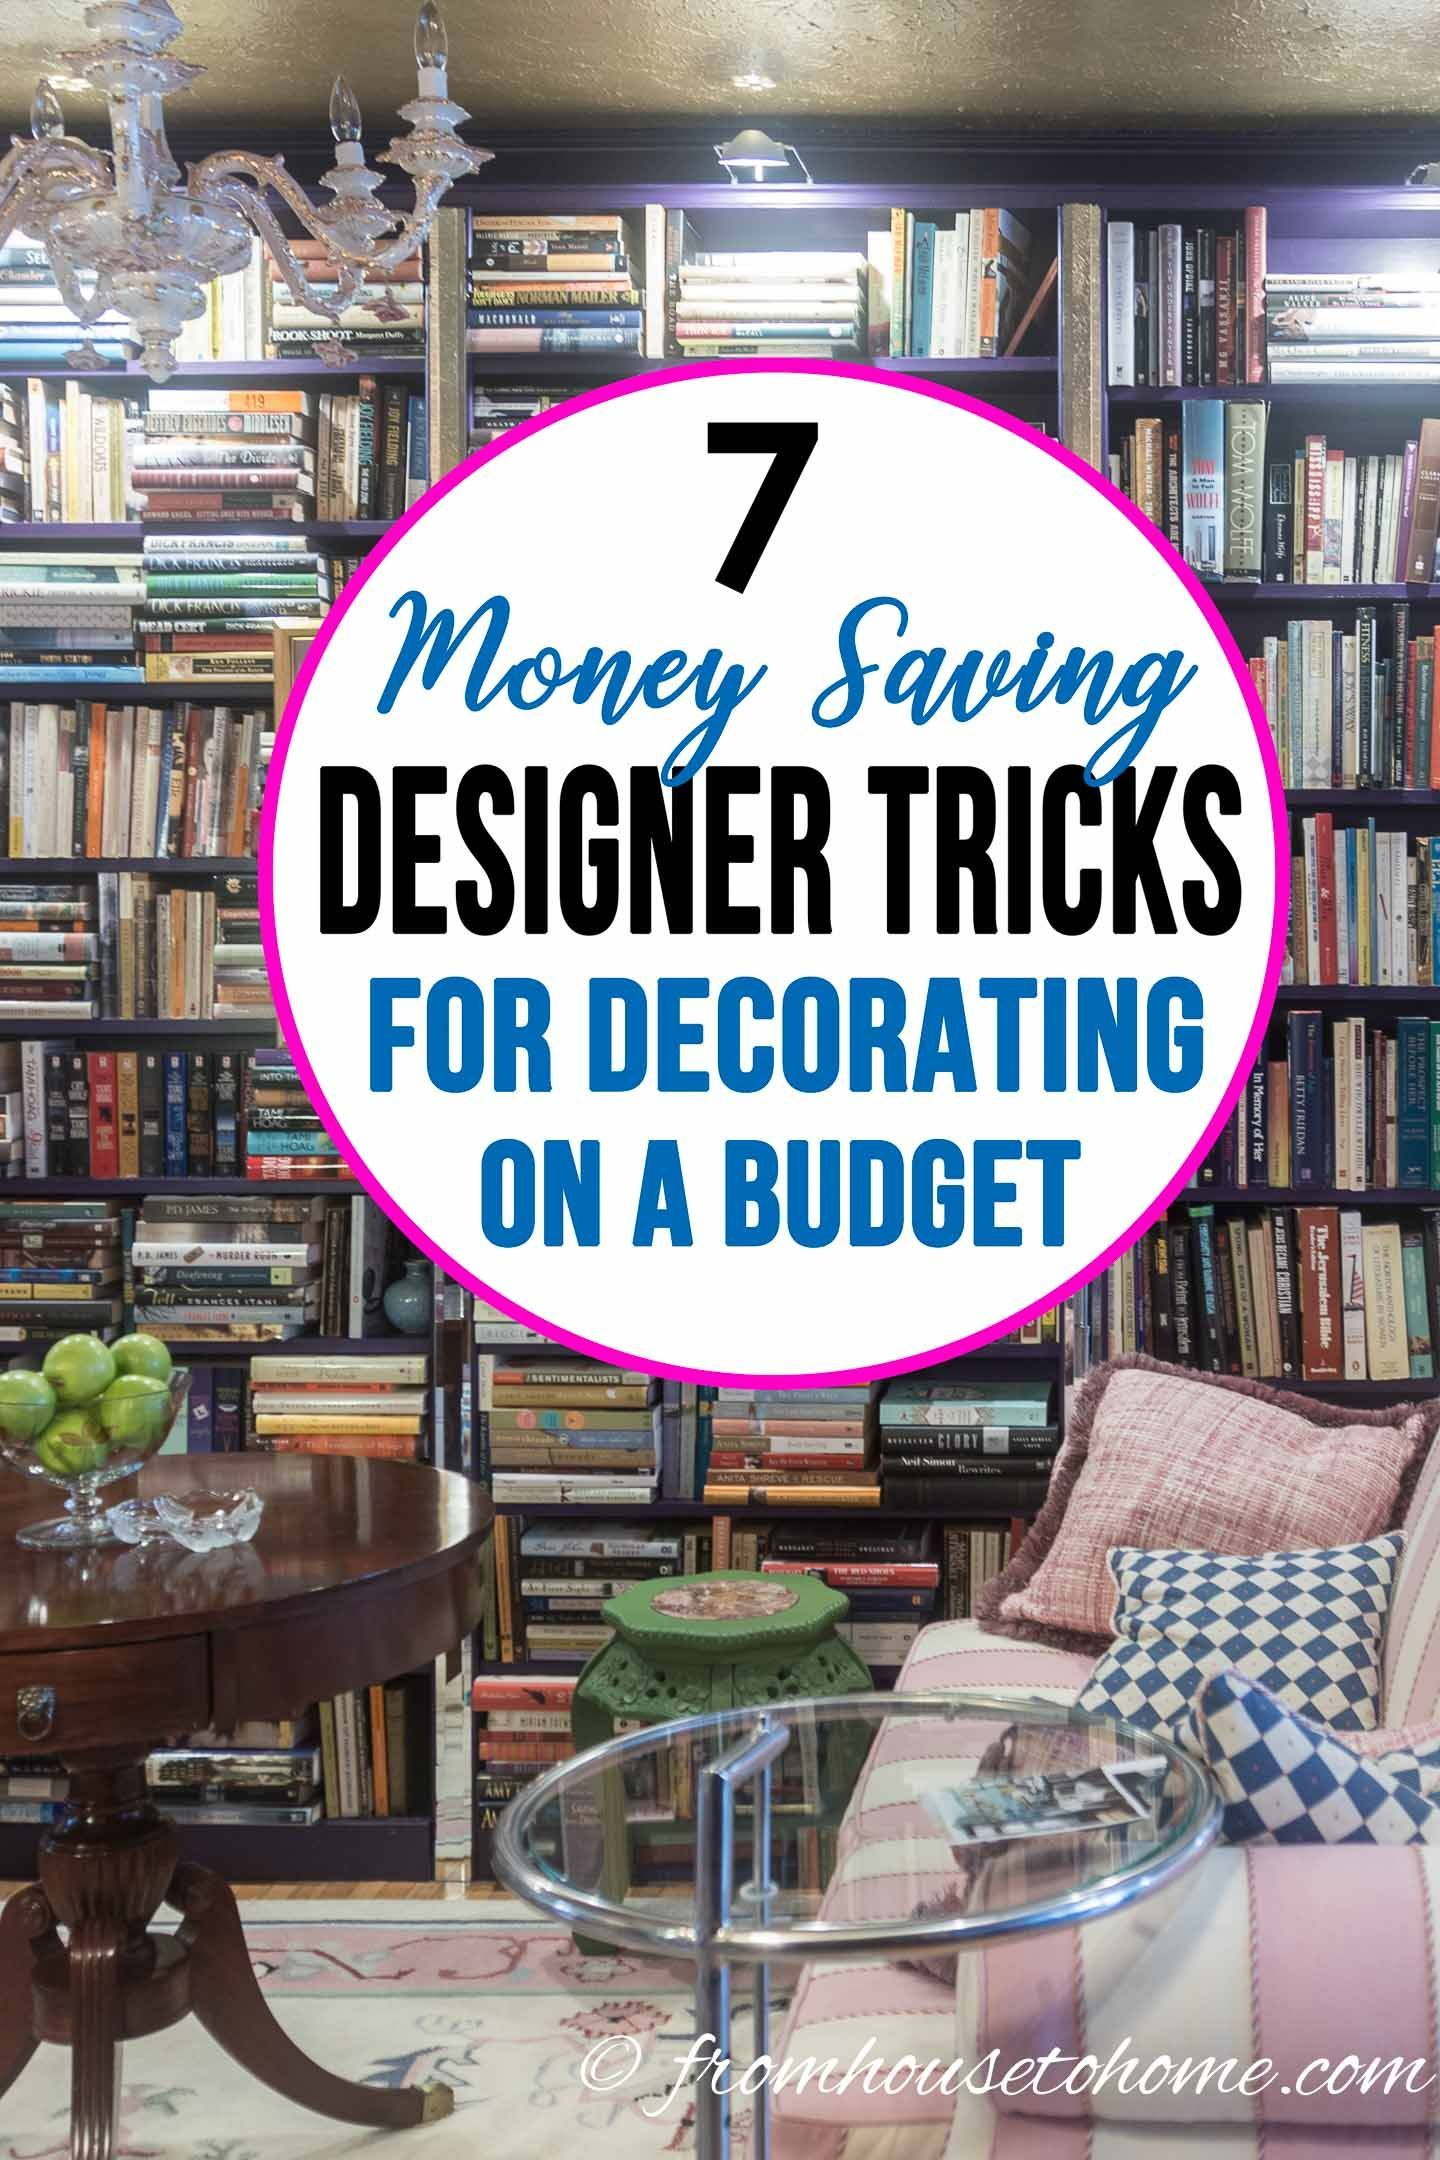 How To Decorate Your Home On A Budget With Images Living Room